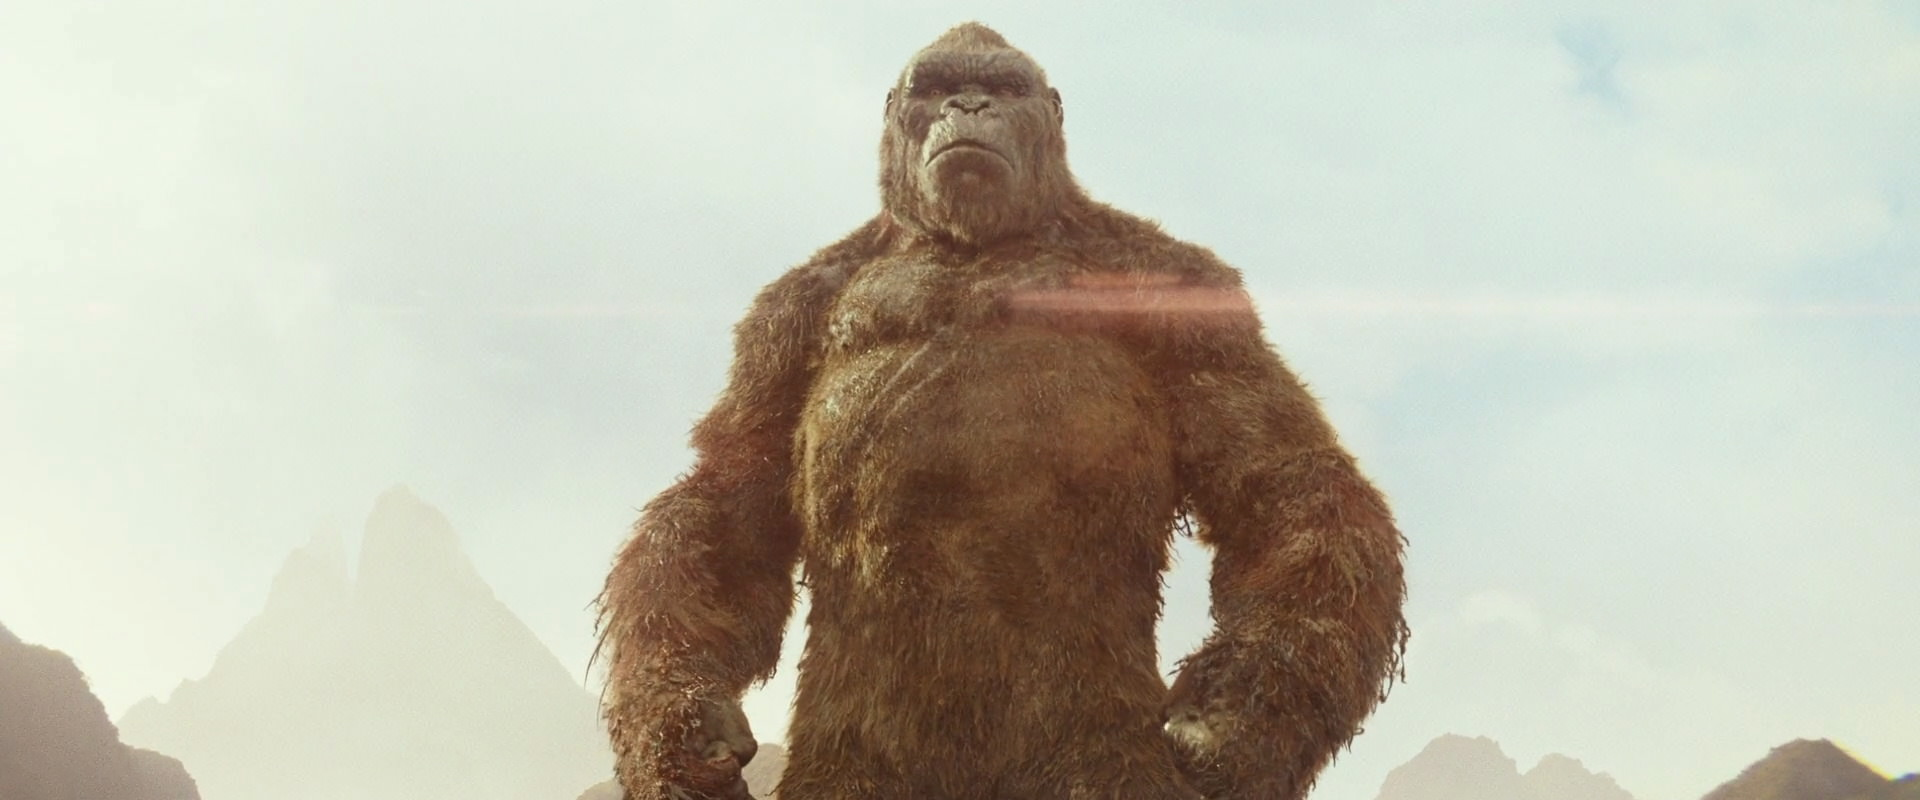 King Kong (MonsterVerse) | Heroes Wiki | FANDOM powered by ...